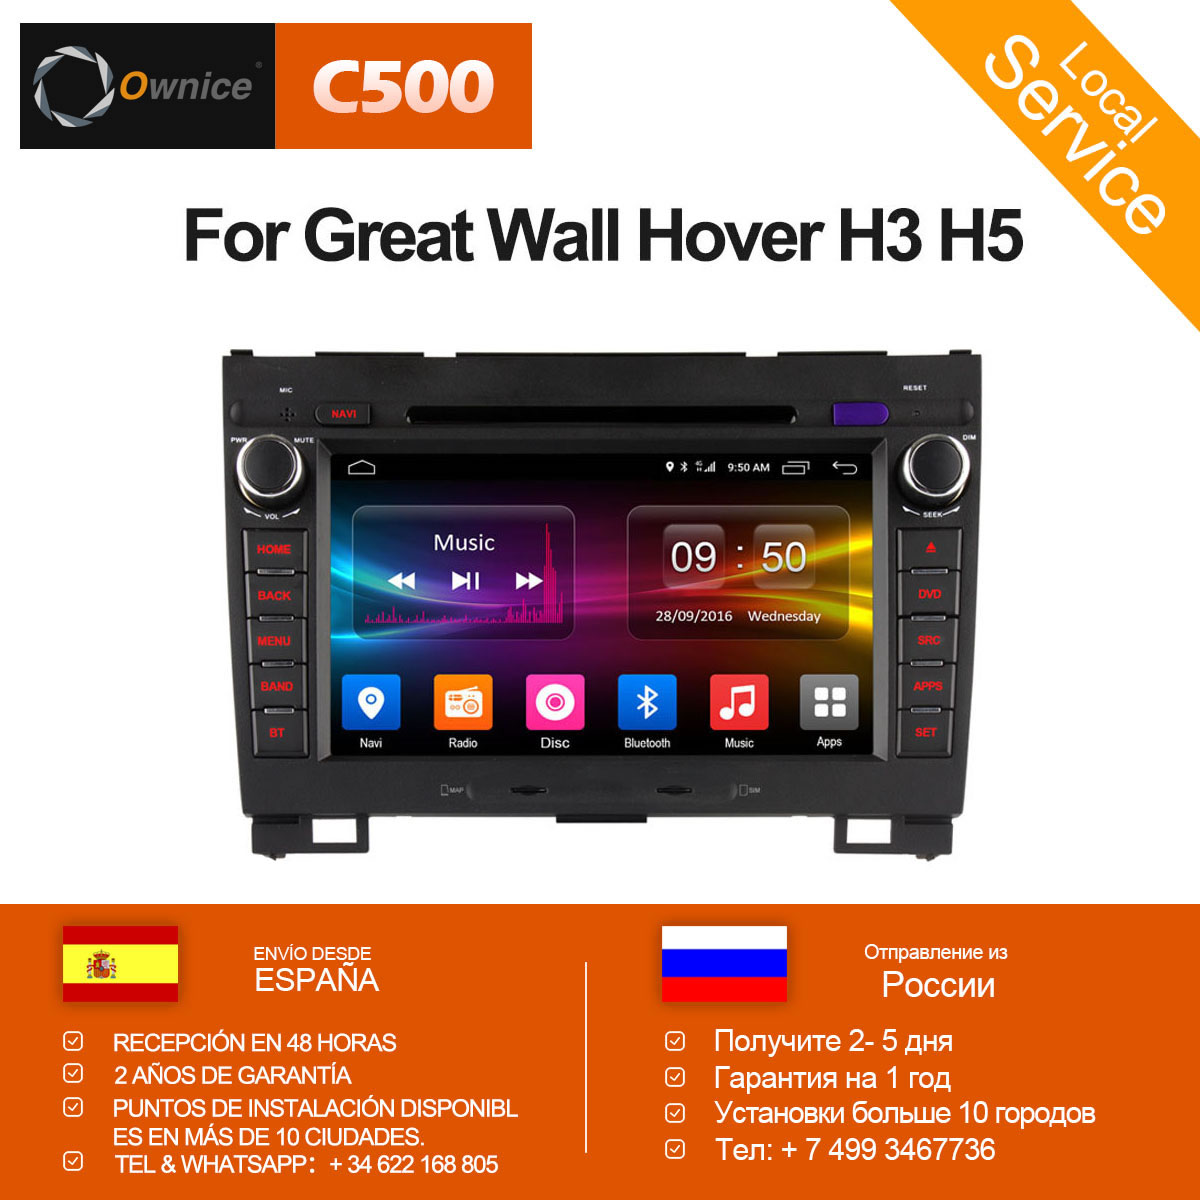 Ownice C500 4G SIM LTE Android 6.0 Quad Core Car dvd player for Greatwall Haval Hover H5 H3 gps navi Radio WIFI 2GB RAM 32GB funrover 9 2 din android 8 0 car radio multimedia dvd player gps for great wall haval h3 h5 2010 2013 glonass wifi fm quad core